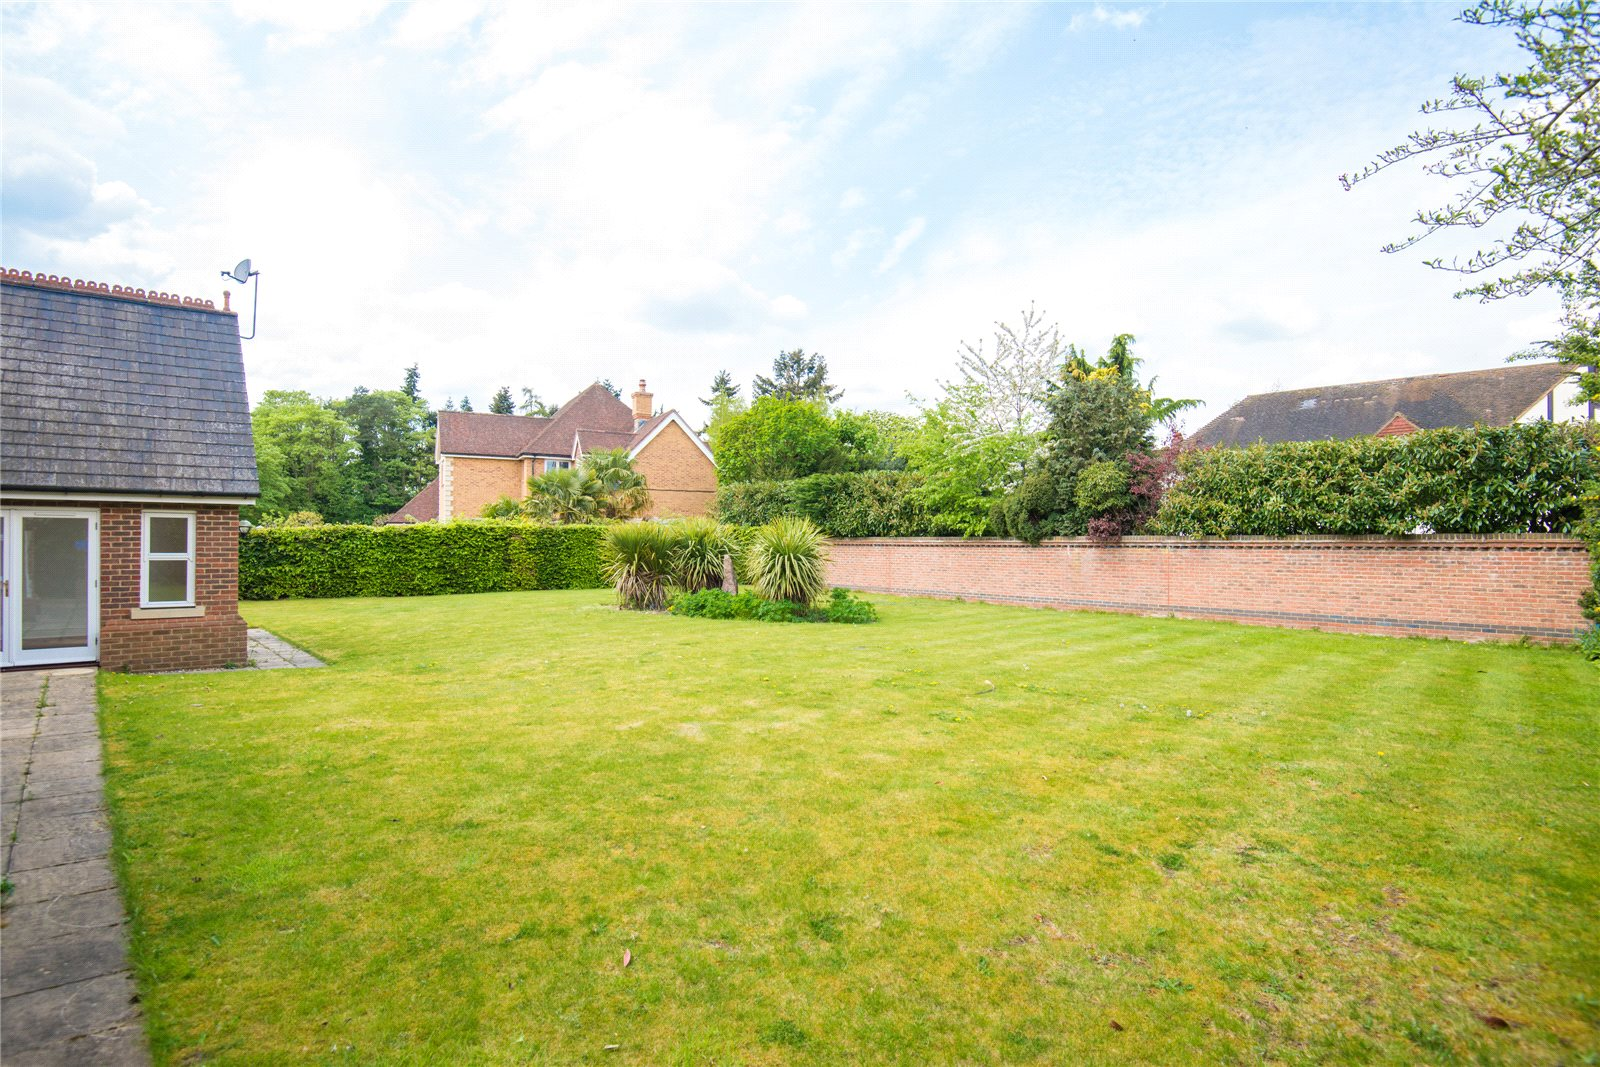 Additional photo for property listing at Stoneyfield, Gerrards Cross, Buckinghamshire, SL9 Gerrards Cross, イギリス